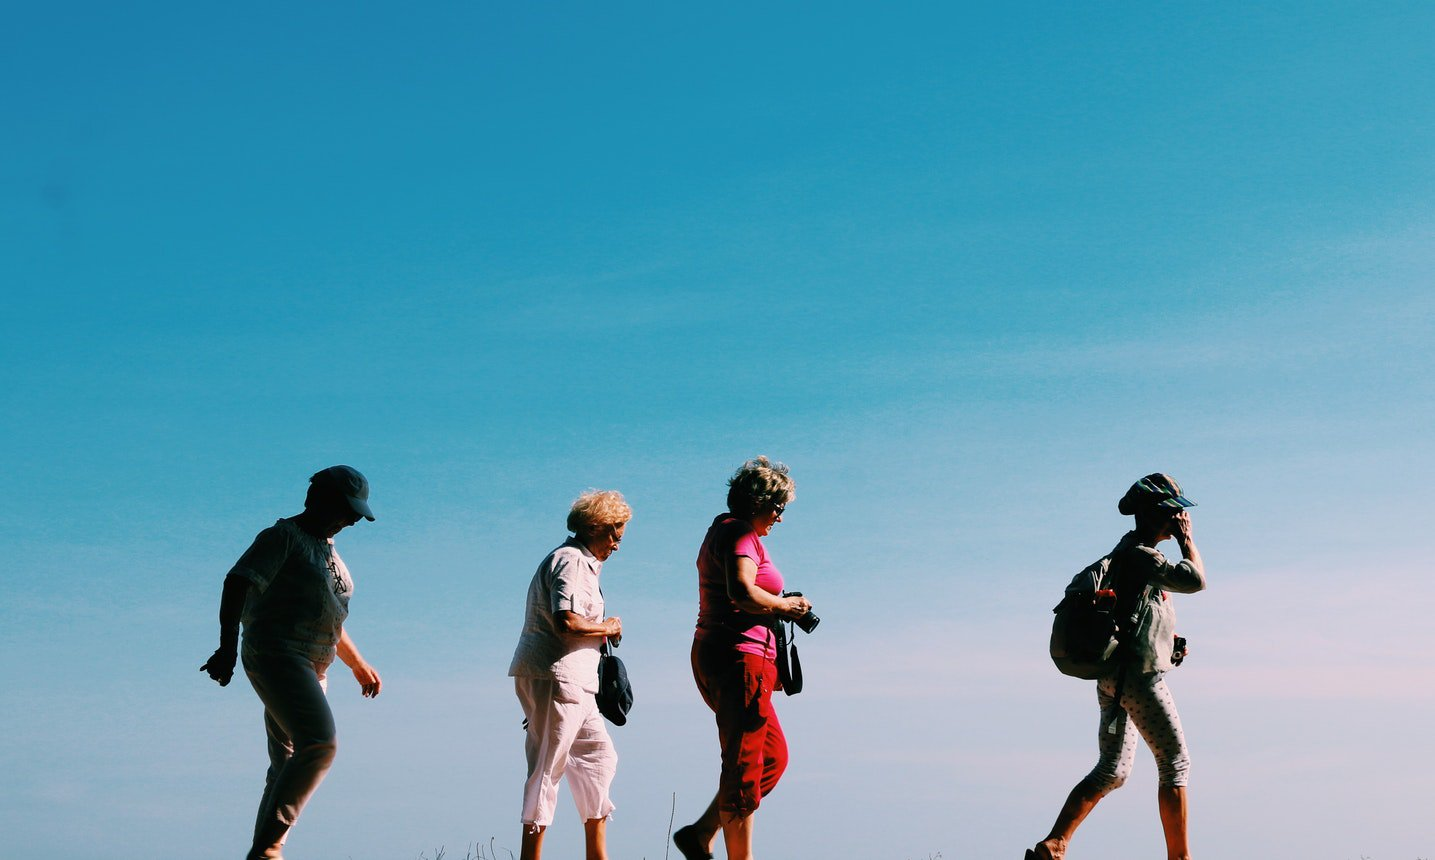 A group of elderly women walking together. It is important for social seniors to stay engaged to avoid social isolation.